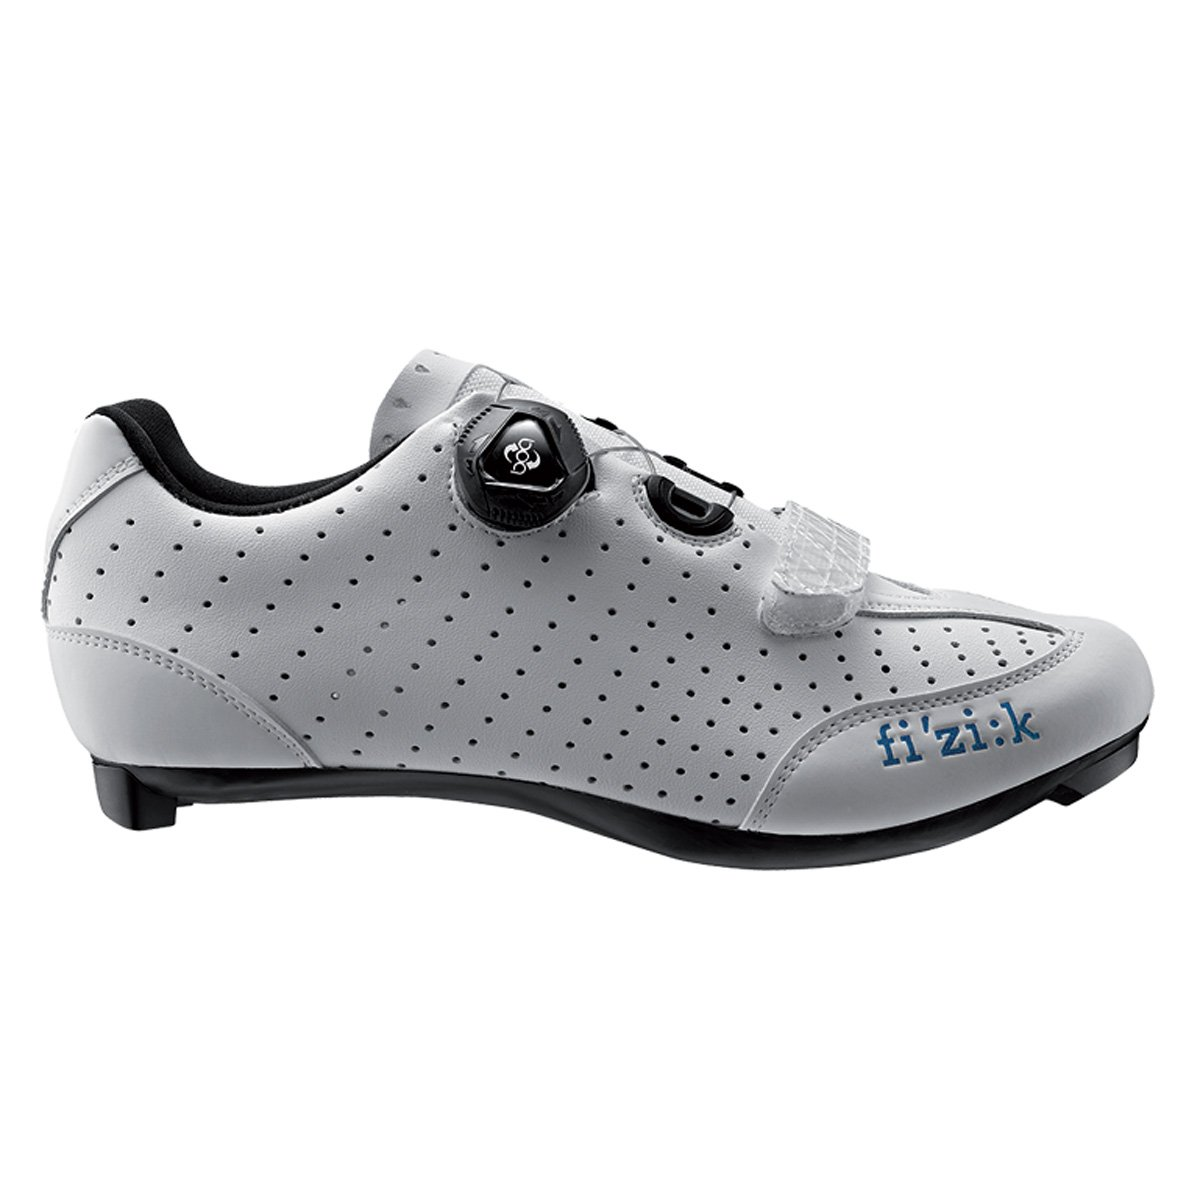 Fizik Women's R3B Donna Boa Road Sport Cycling Shoes - White/Turquoise B00ROPINC6 39.5|White/Turquoise